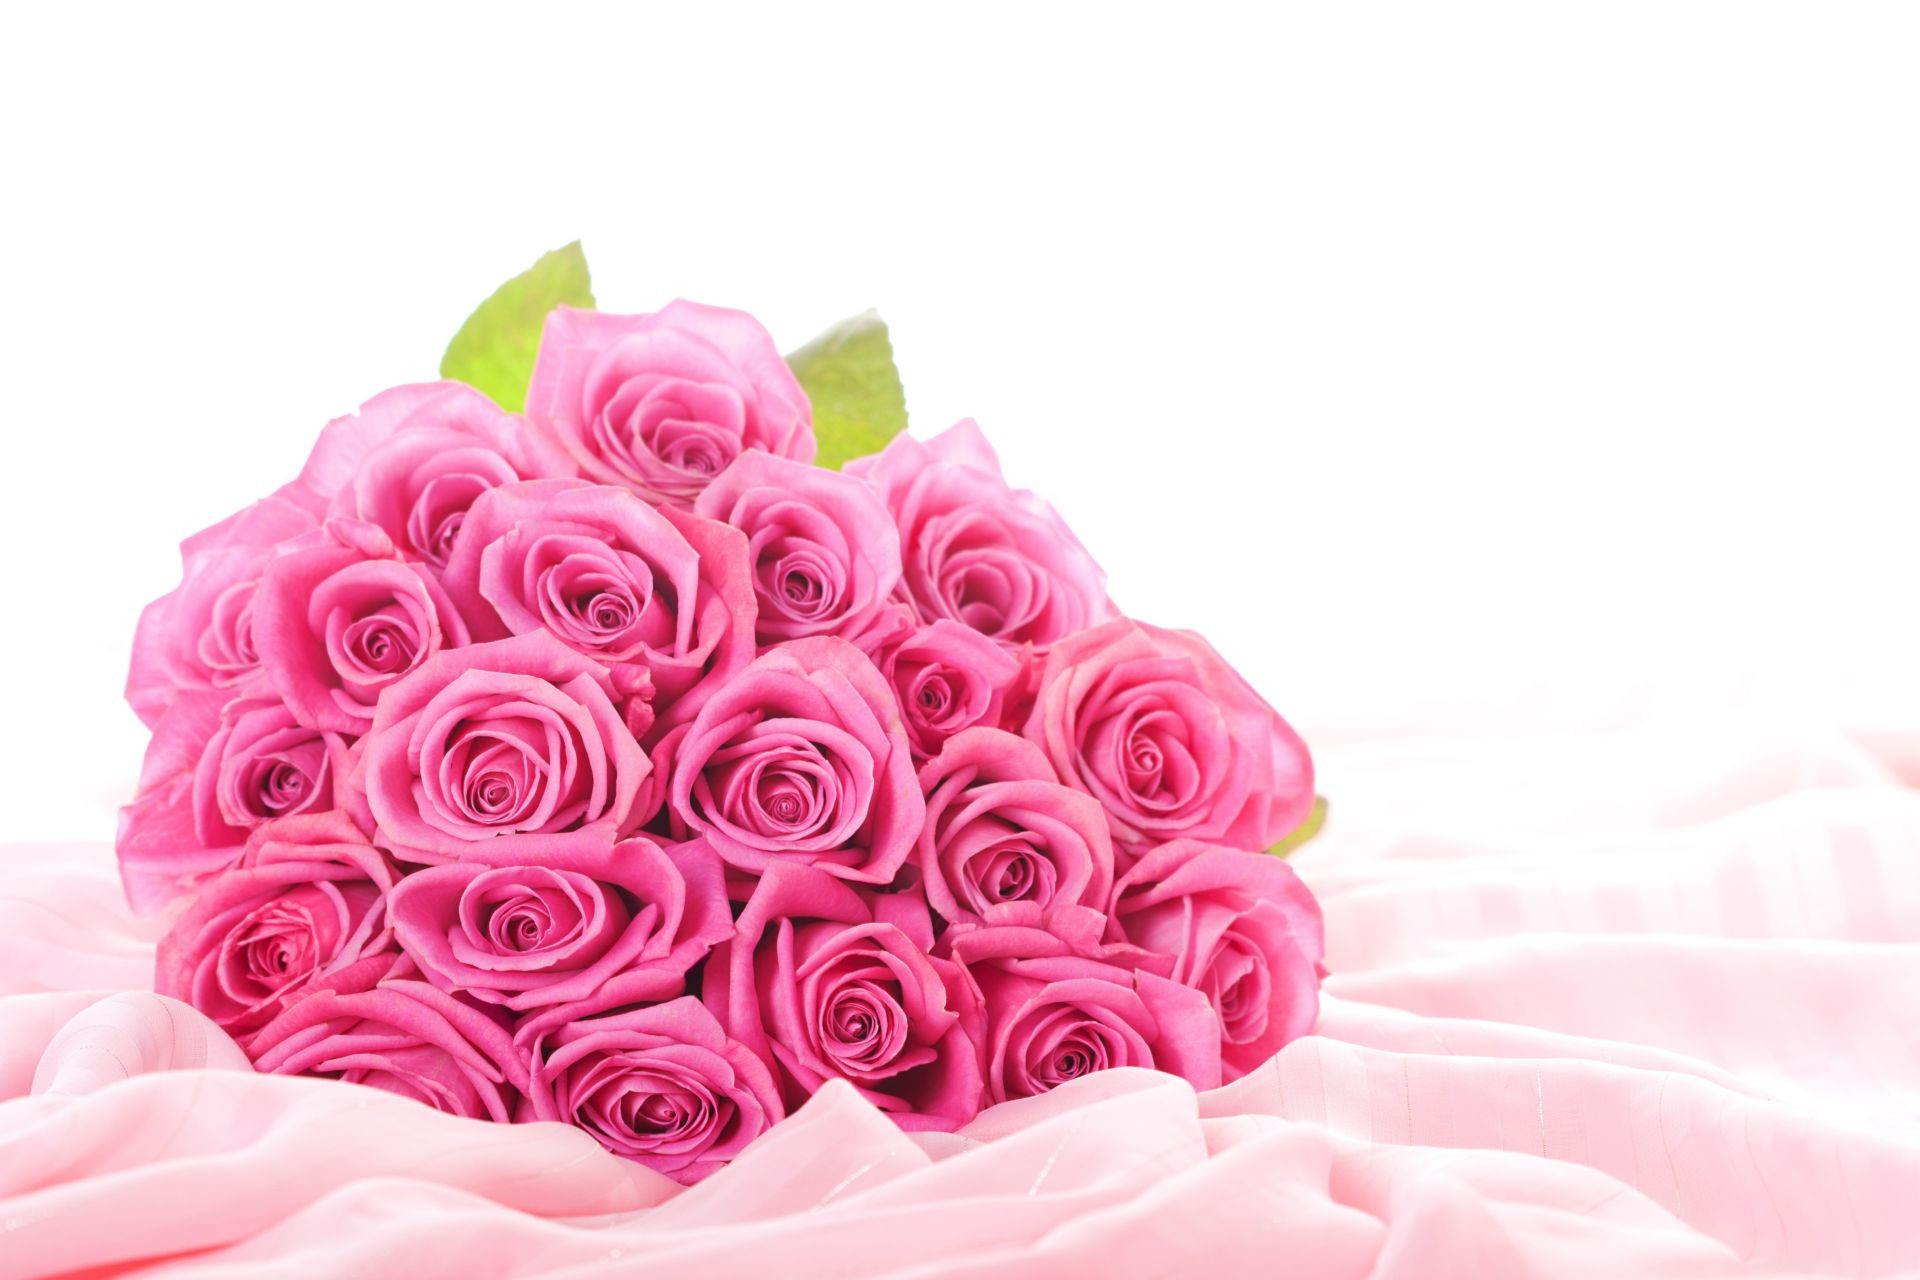 Rose flowers pink roses bouquet pink flowers android wallpapers for rose flowers pink roses bouquet pink flowers android wallpapers for free mightylinksfo